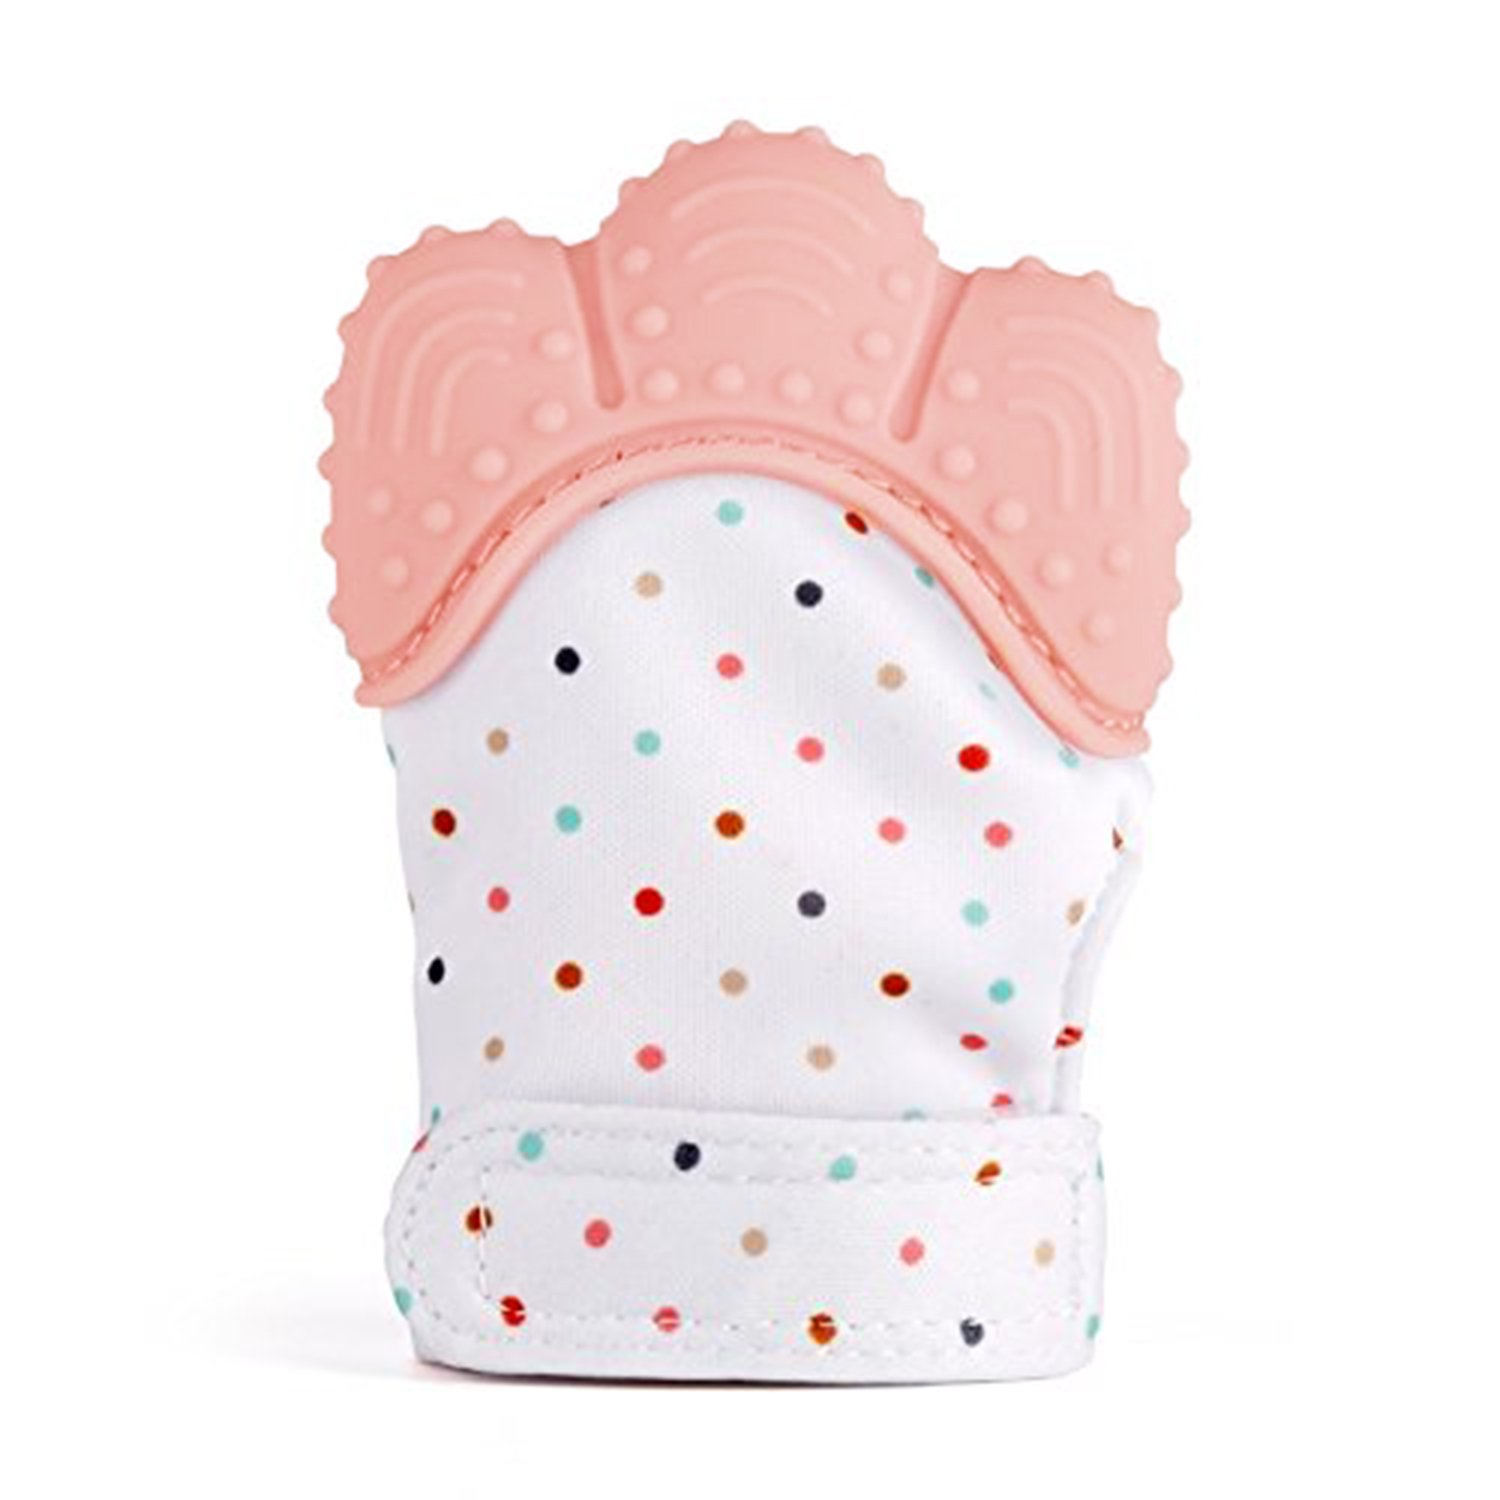 Teething Mitten, SZHSR Baby Self Soothing Teether Mitten BPA Free Teething Pain Relief Toy Wearable for Left & Right Hand for Unisex 2 - 8 Months Babies. (Pink, 1PSC)